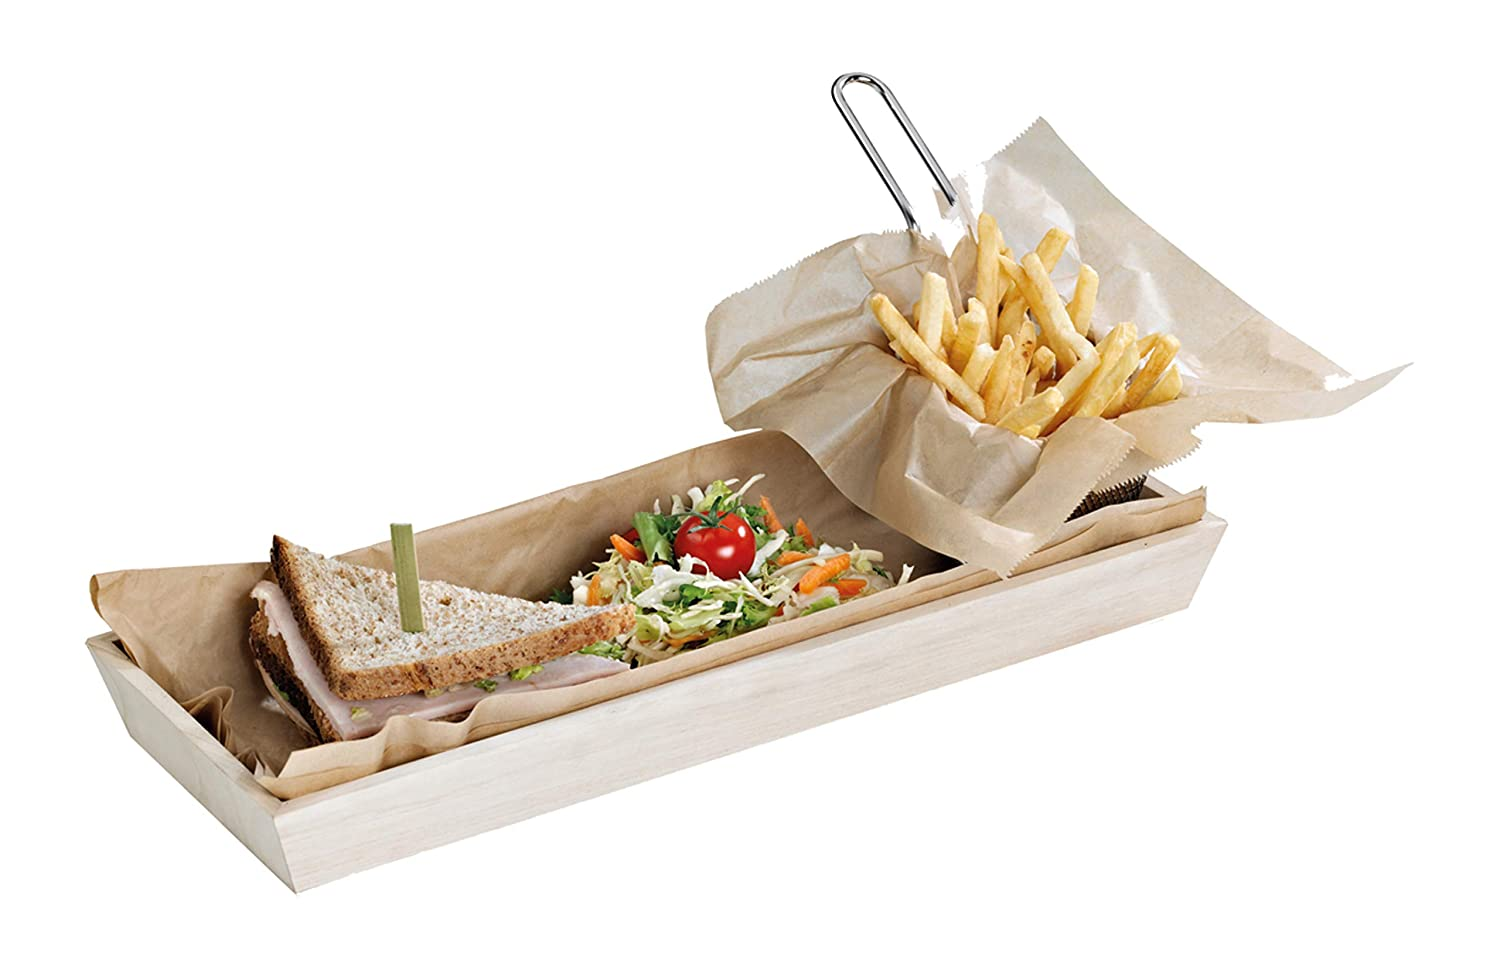 Noah15 Heavy Duty Wooden Tray Cheap mail order sales Case 10 Beauty products PacknWood - of Biodegra